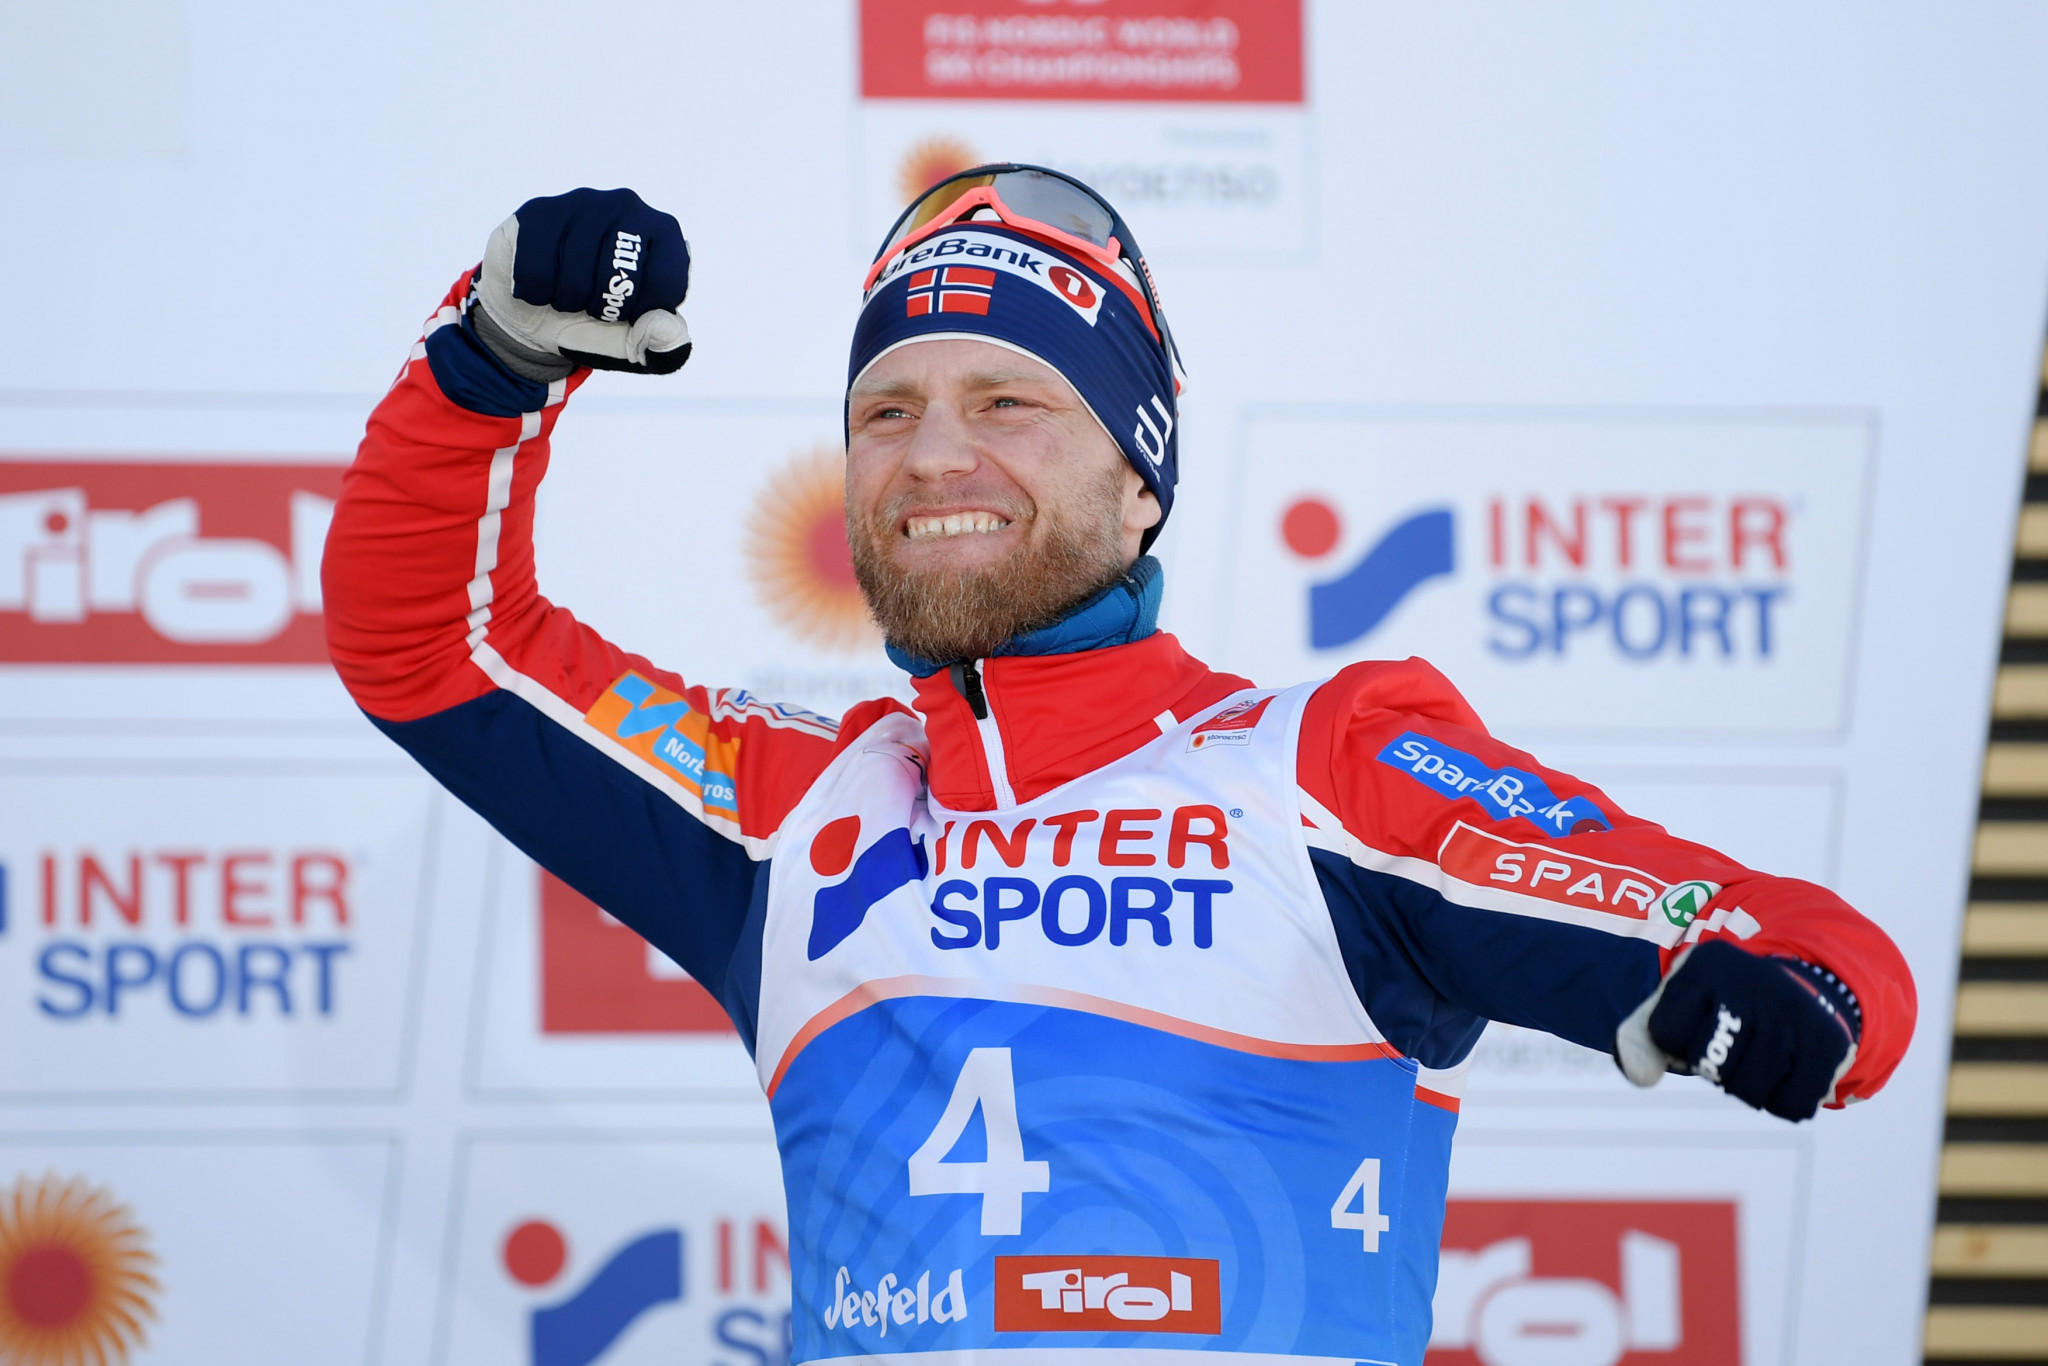 Martin Johnsrud Sundby won the men's 15km cross country race hours after an Austrian police raid arrested nine people ©Getty Images